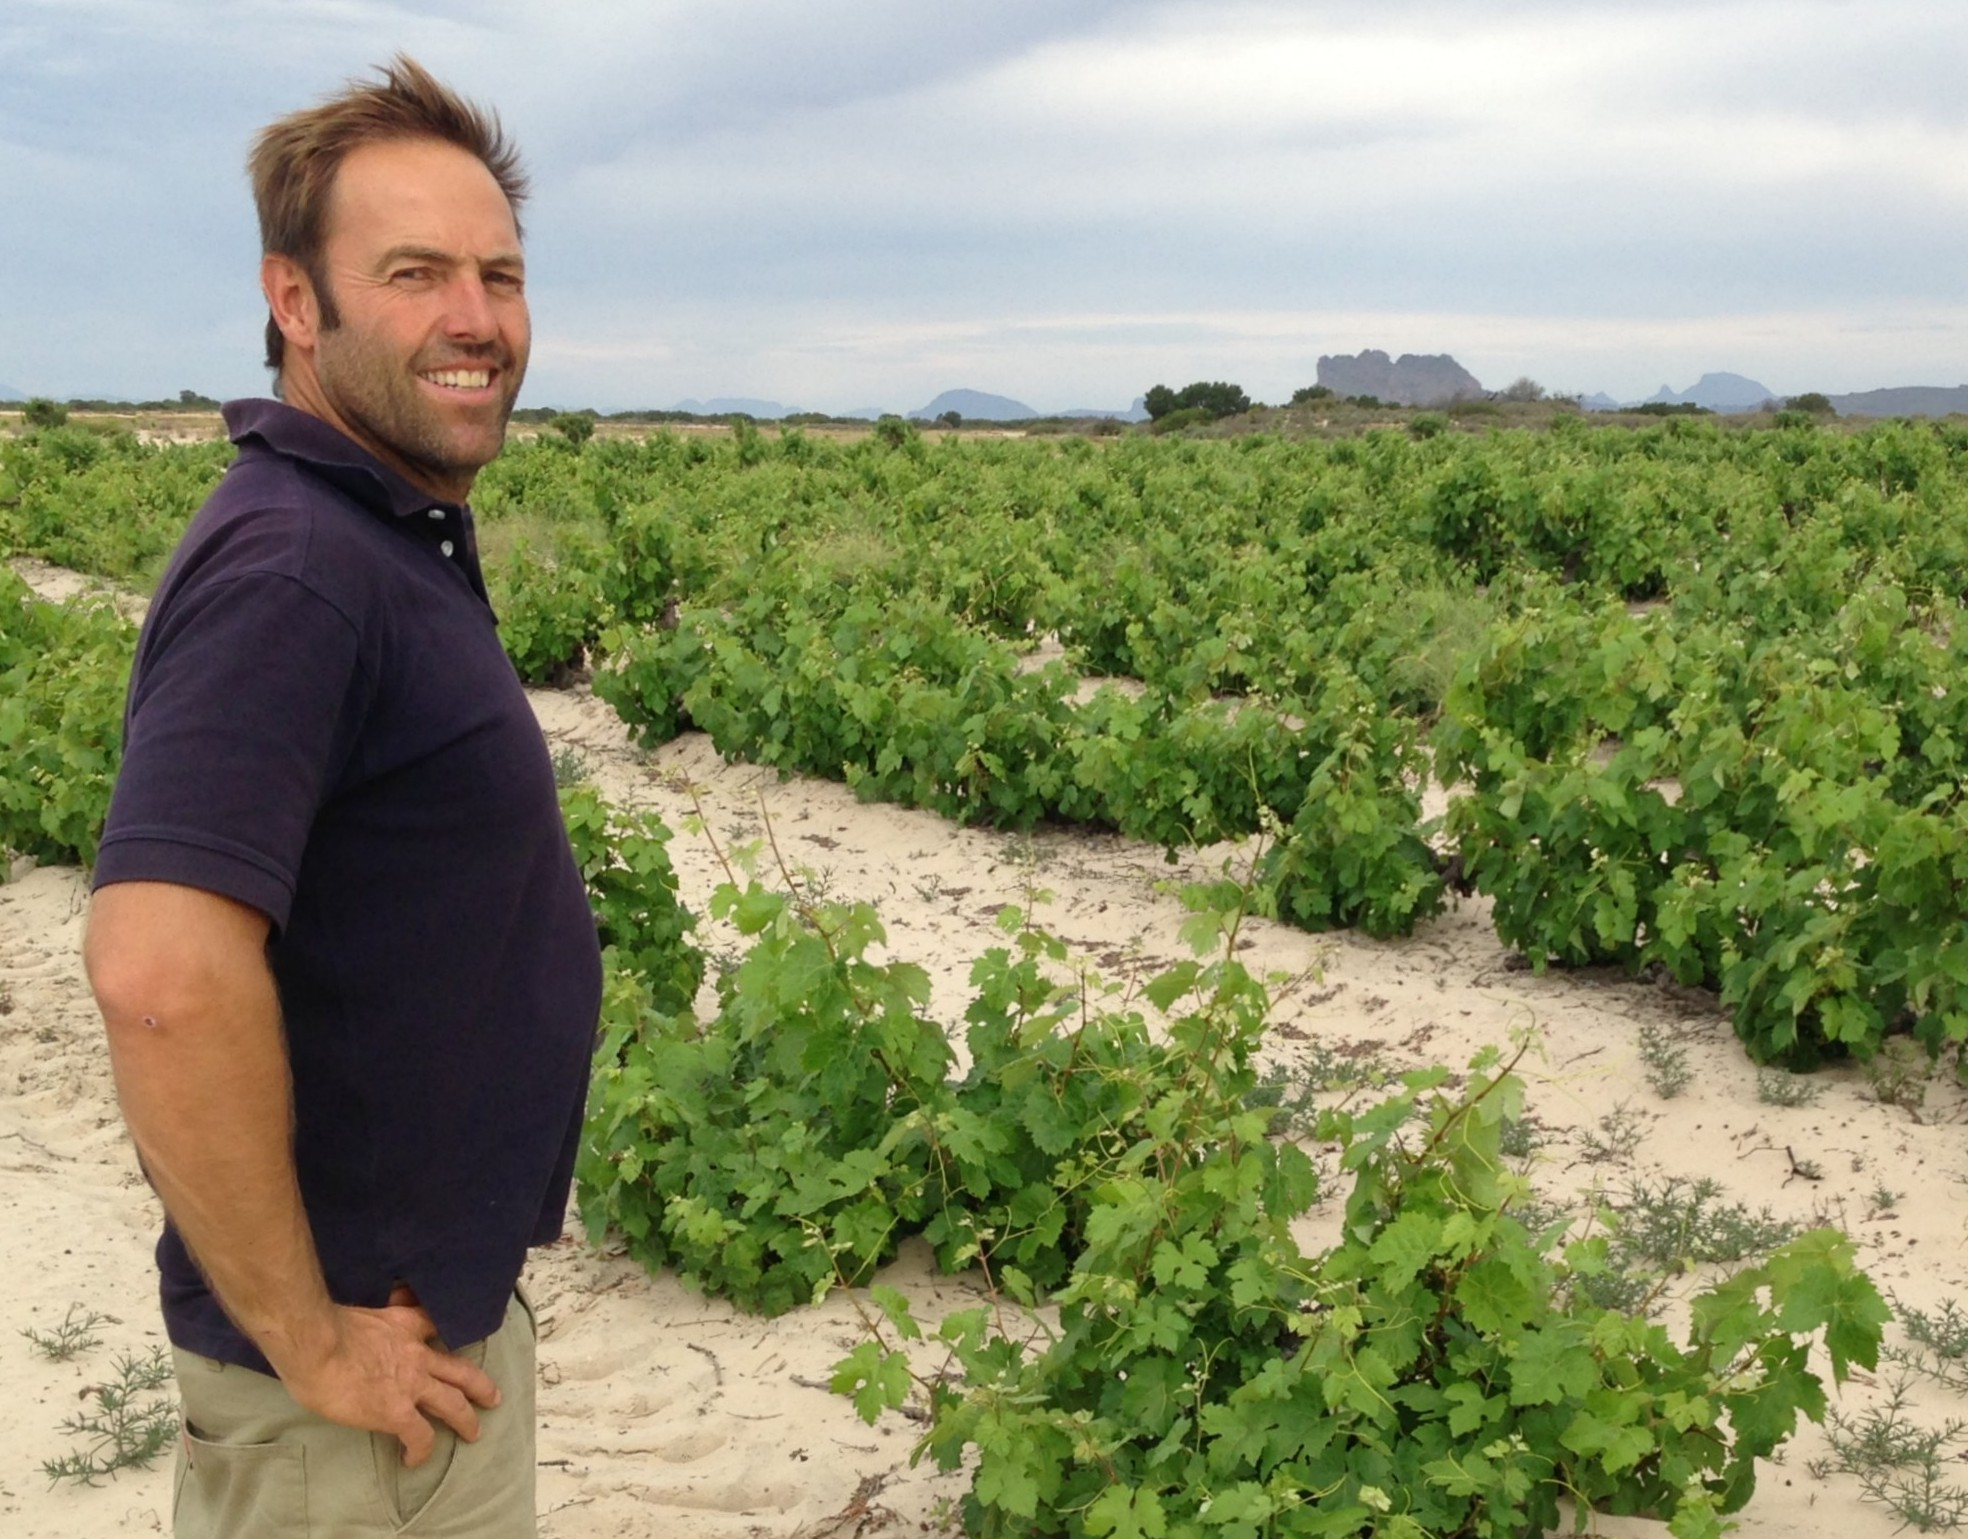 Tim James: The Top Five South African Wineries photo